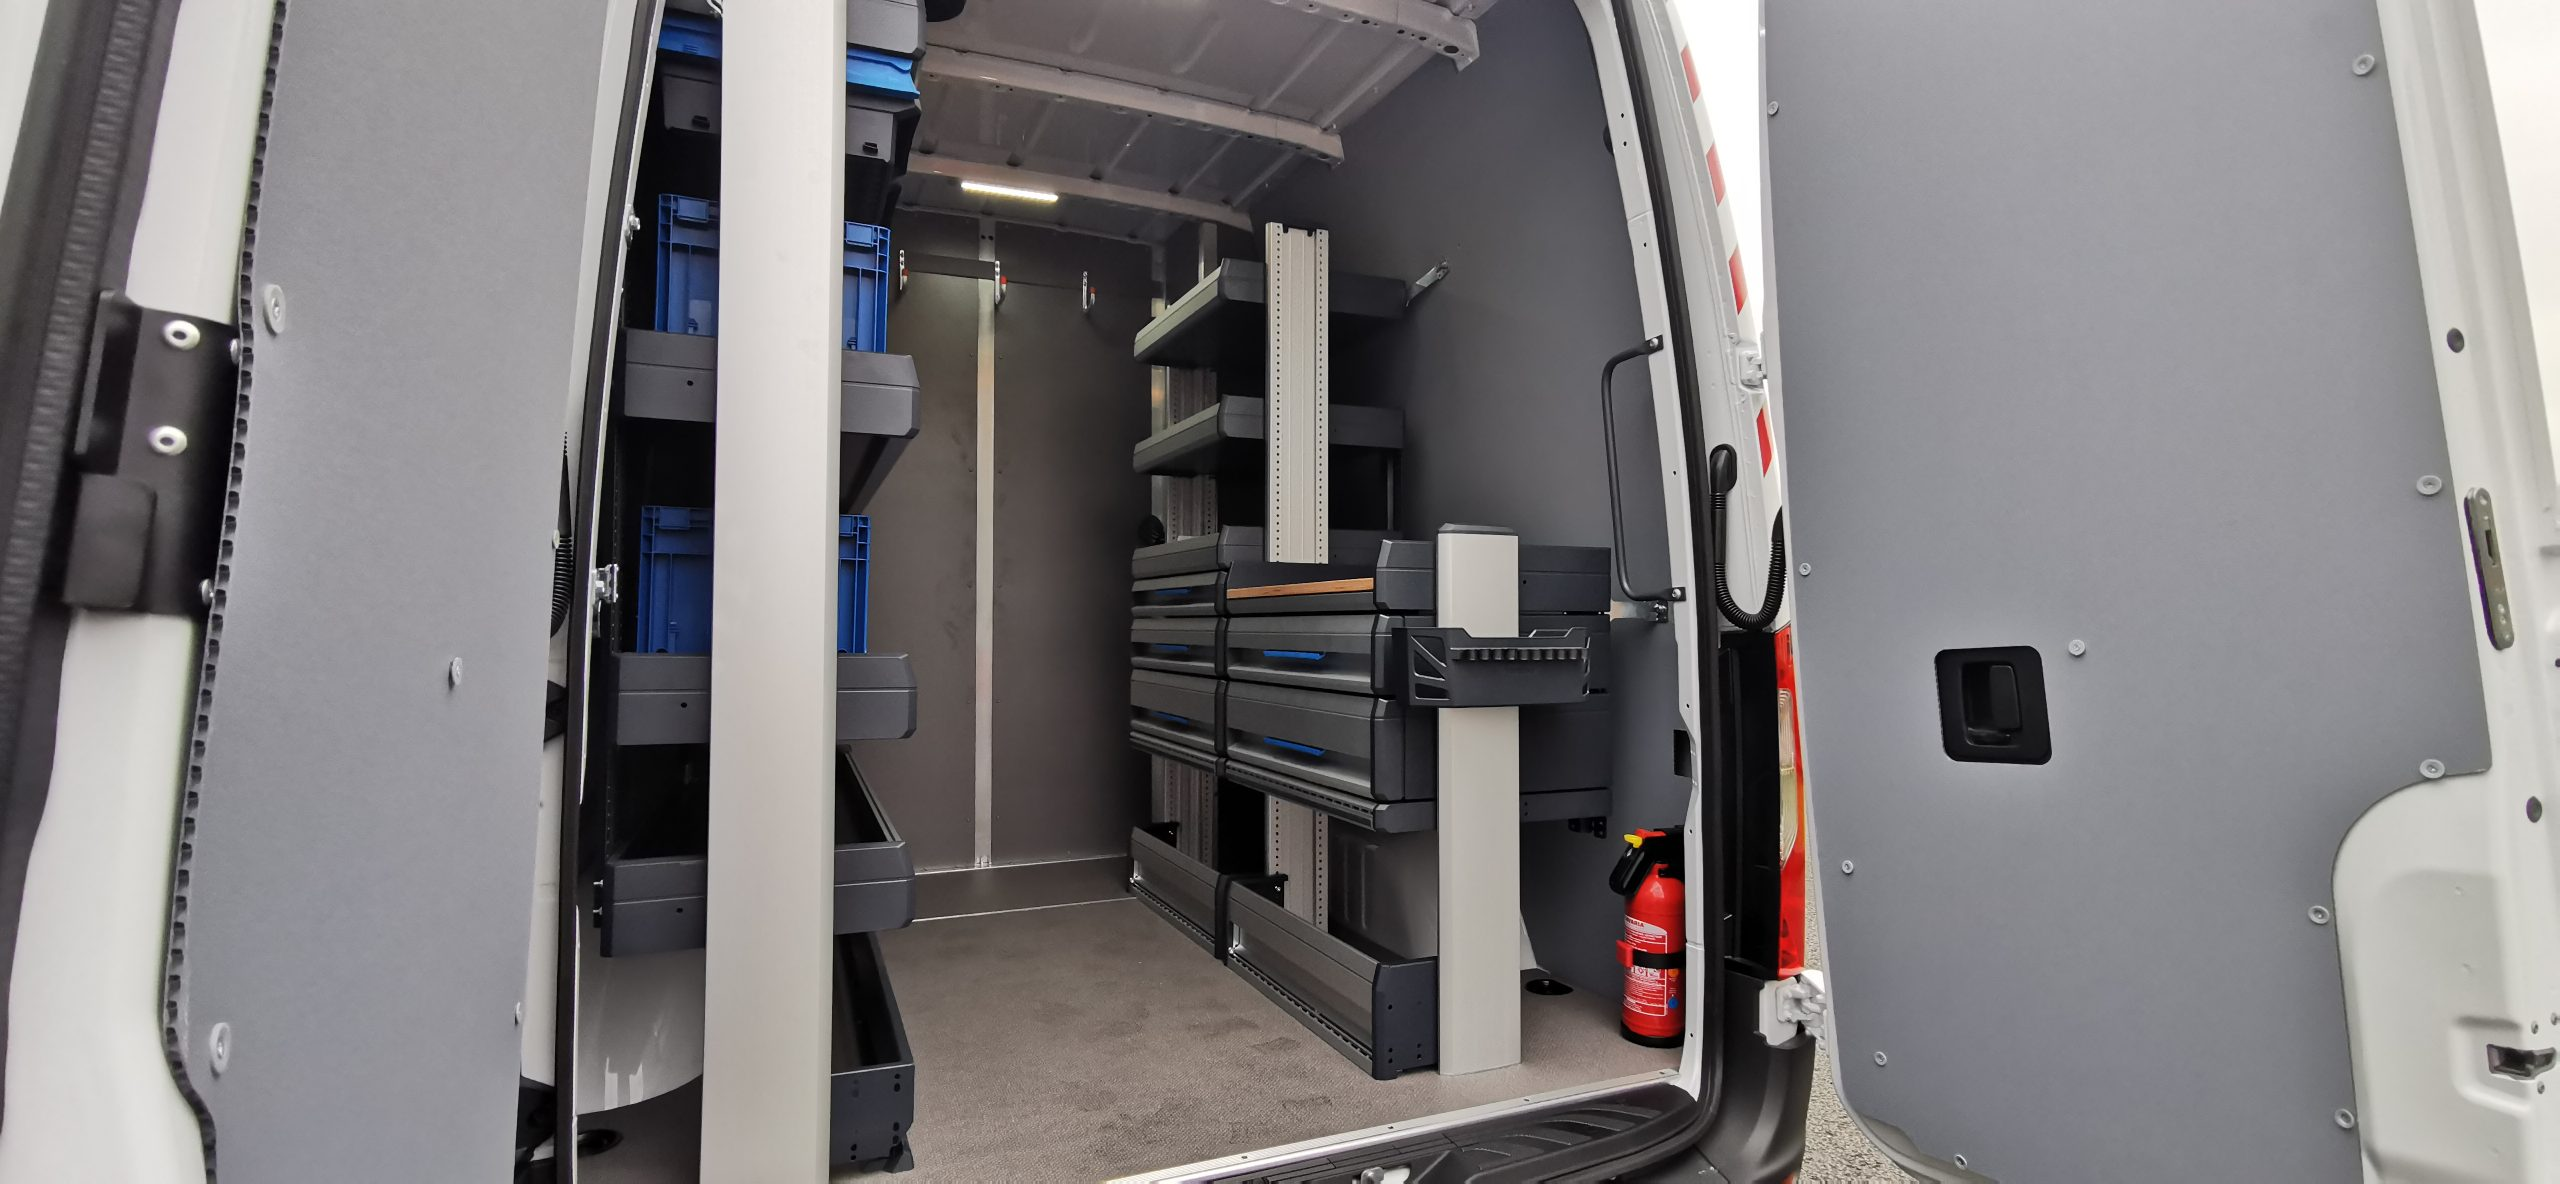 Fleet Installations Nottingham - Fleet Installations Derby - Fleet Installations Leicester - Fleet Installs Nottingham - Fleet Installs Derby - Fleet Installs Leicester - Fleet Work Nottingham - Fleet Work Derby - Fleet Work Leicester